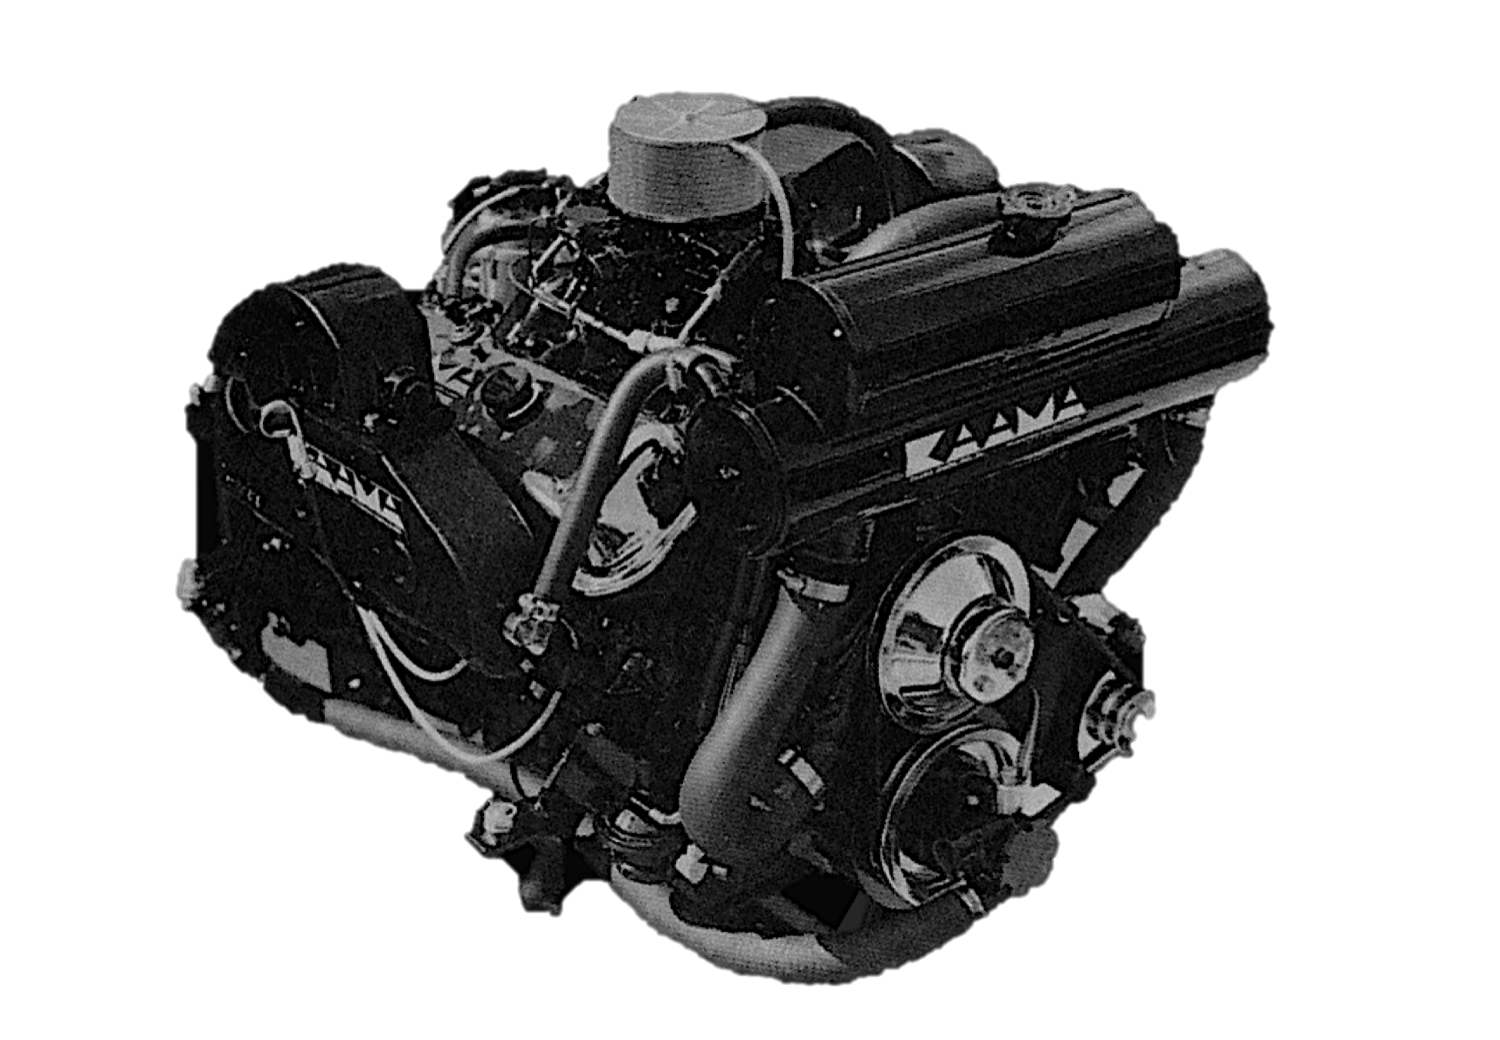 """KAAMA Power Systems """"competition type"""" engine"""